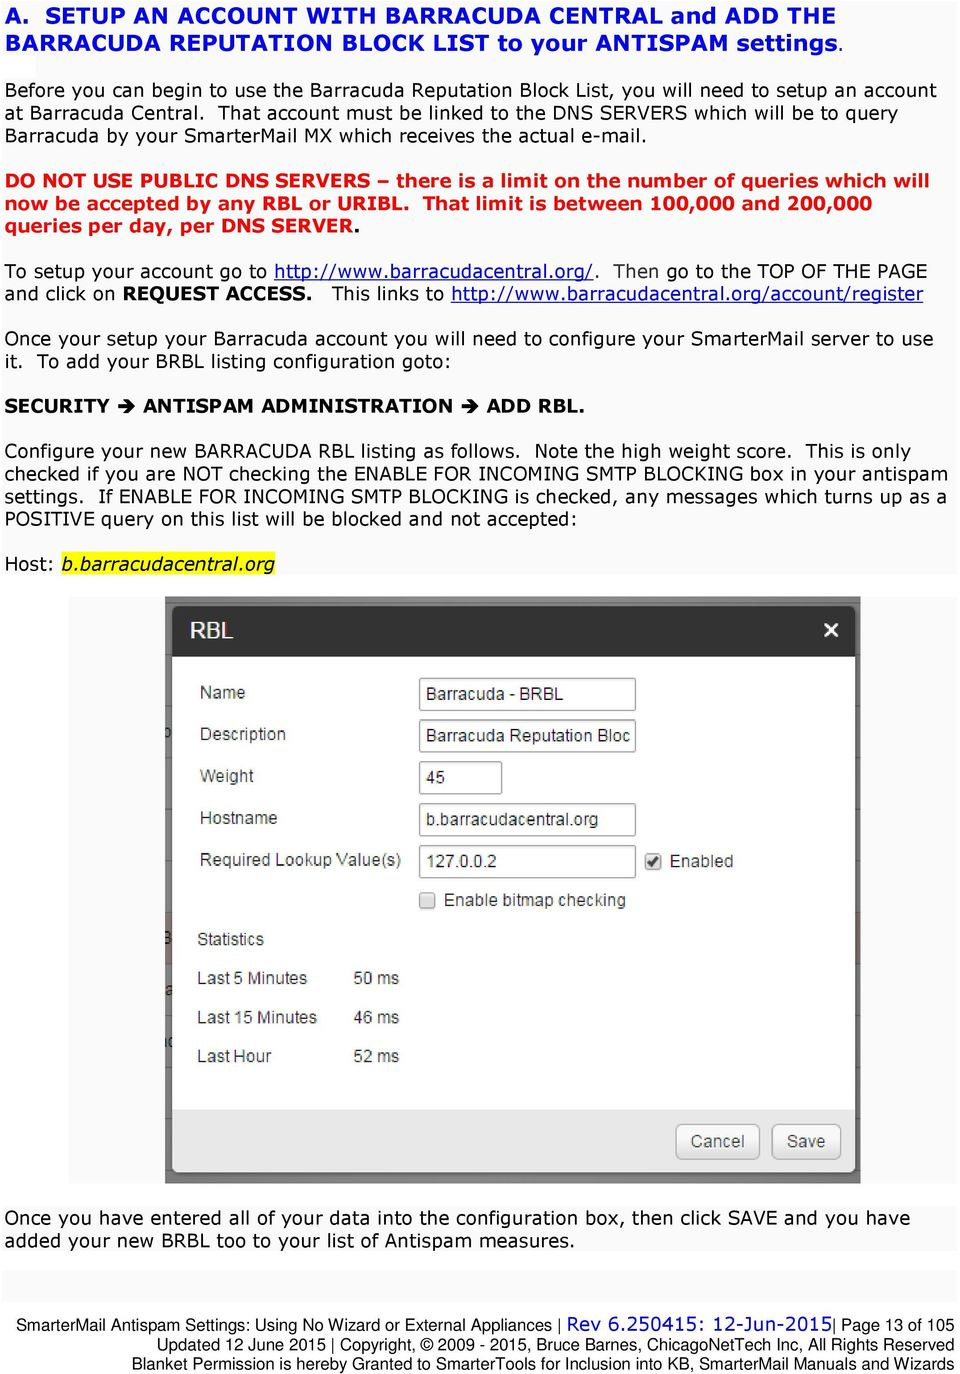 Anti Spam Settings Using Only Smartermail Anti Spam Tools Pdf